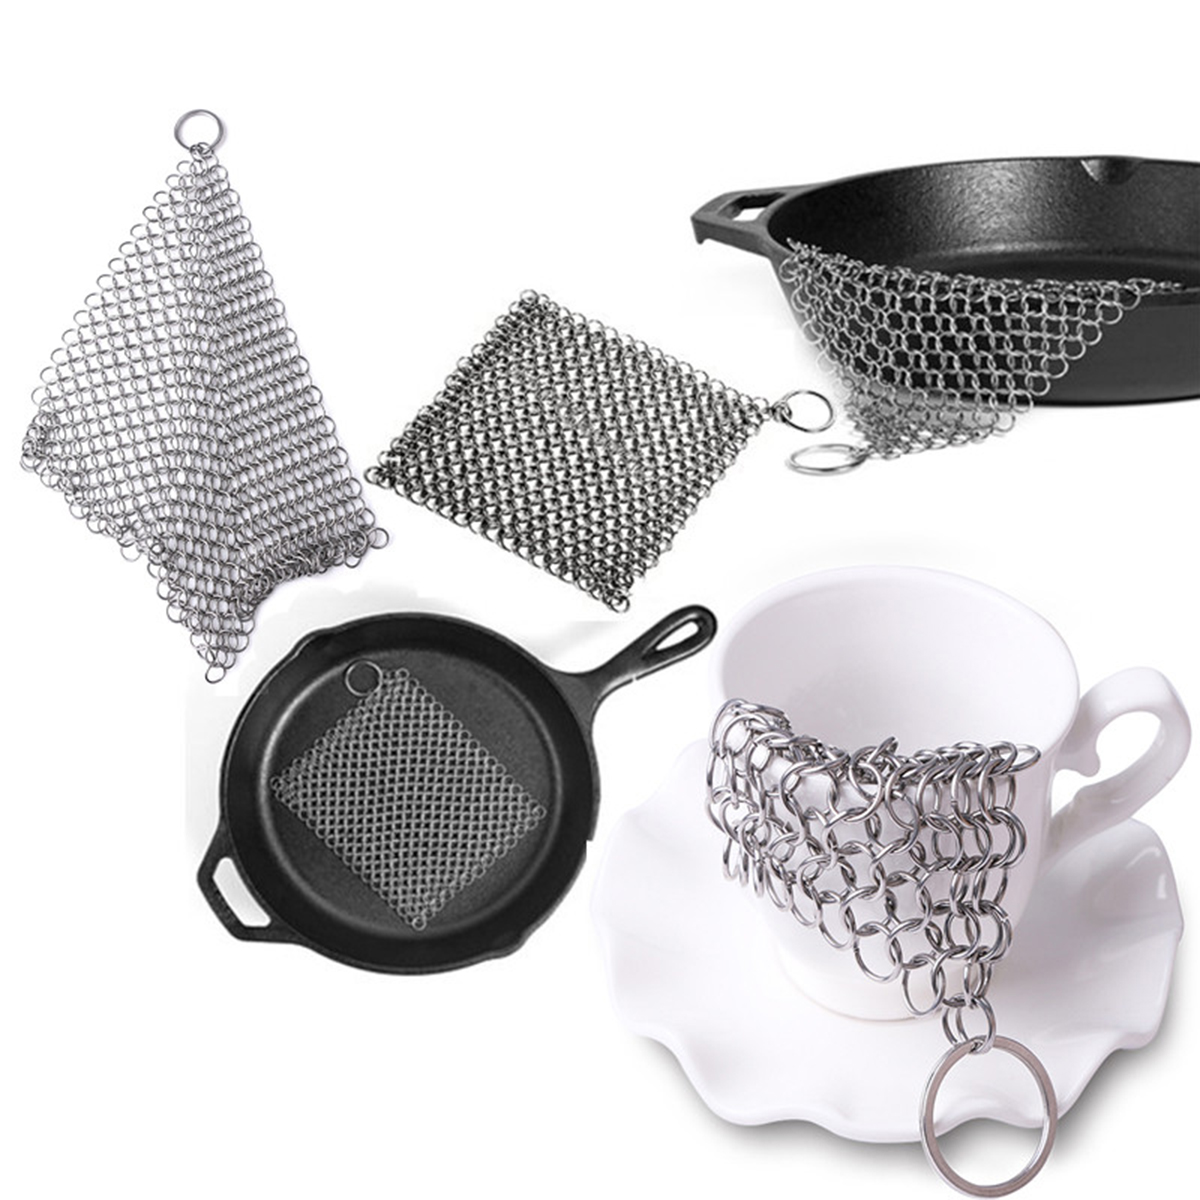 Smarit Cast Iron Cleaner XL 8x6 Premium Stainless Steel Chain mail Scrubber to Clean Cast Iron Skillet, Cookware, pan, wok and Griddle